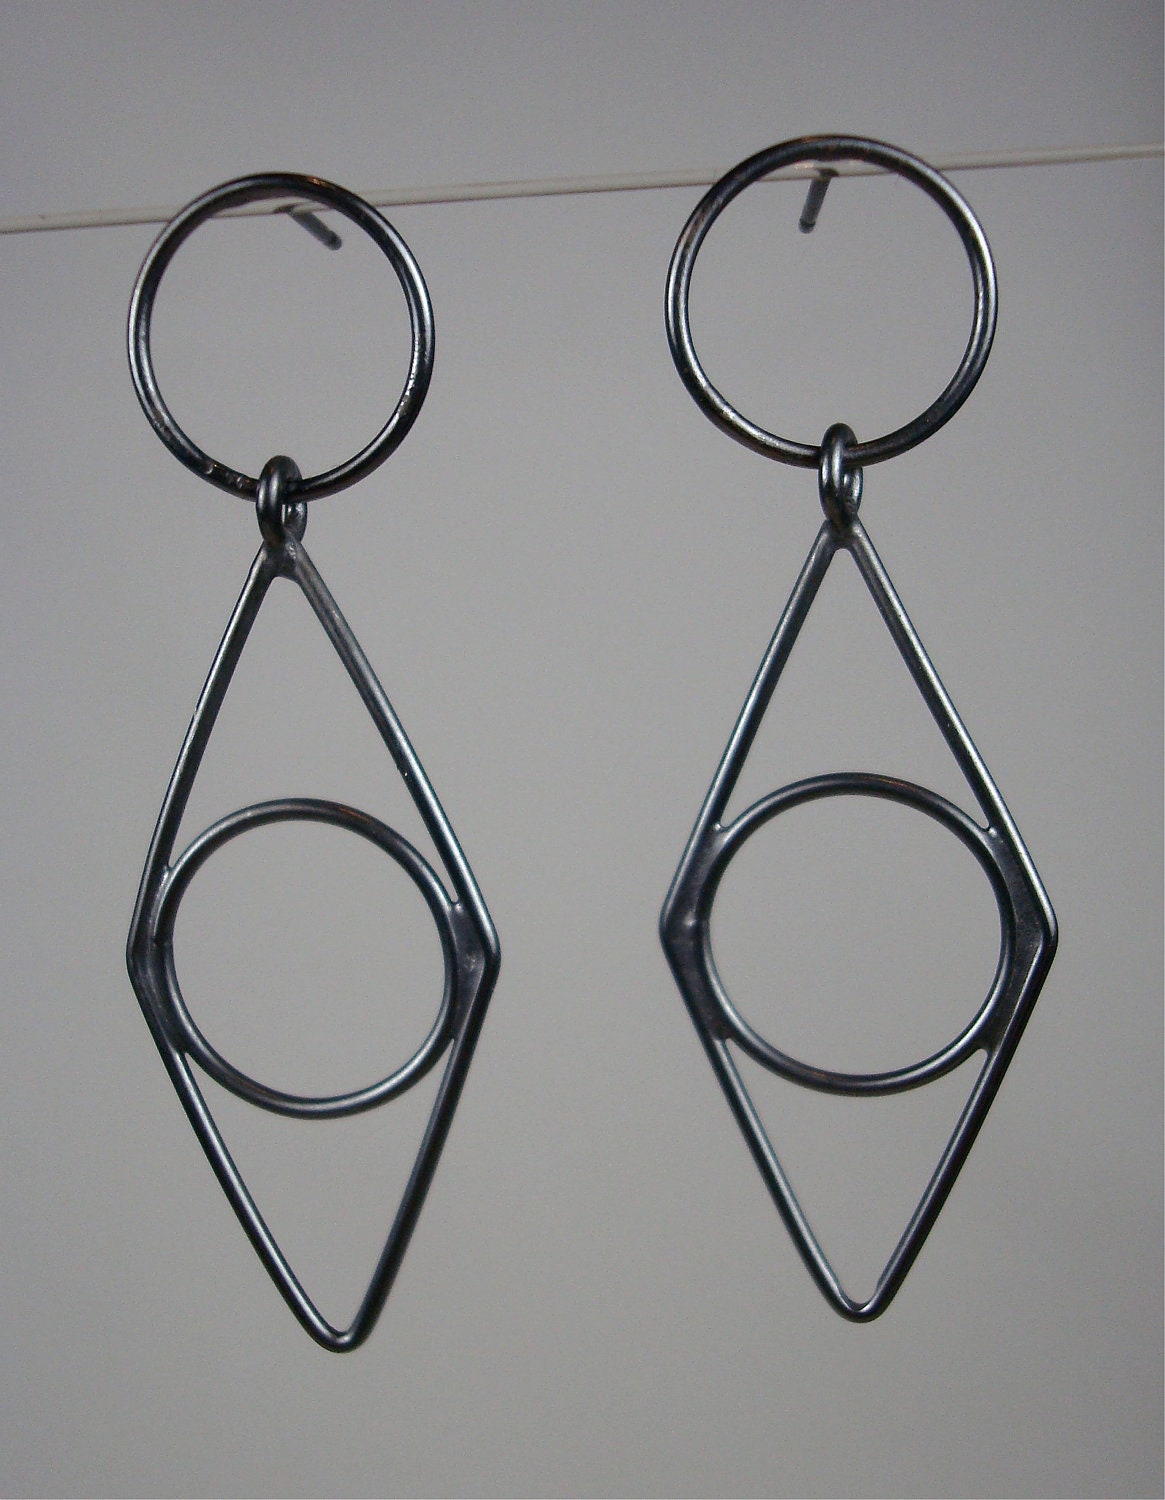 Line Drawing Etsy : Items similar to black silver line drawing drop earrings